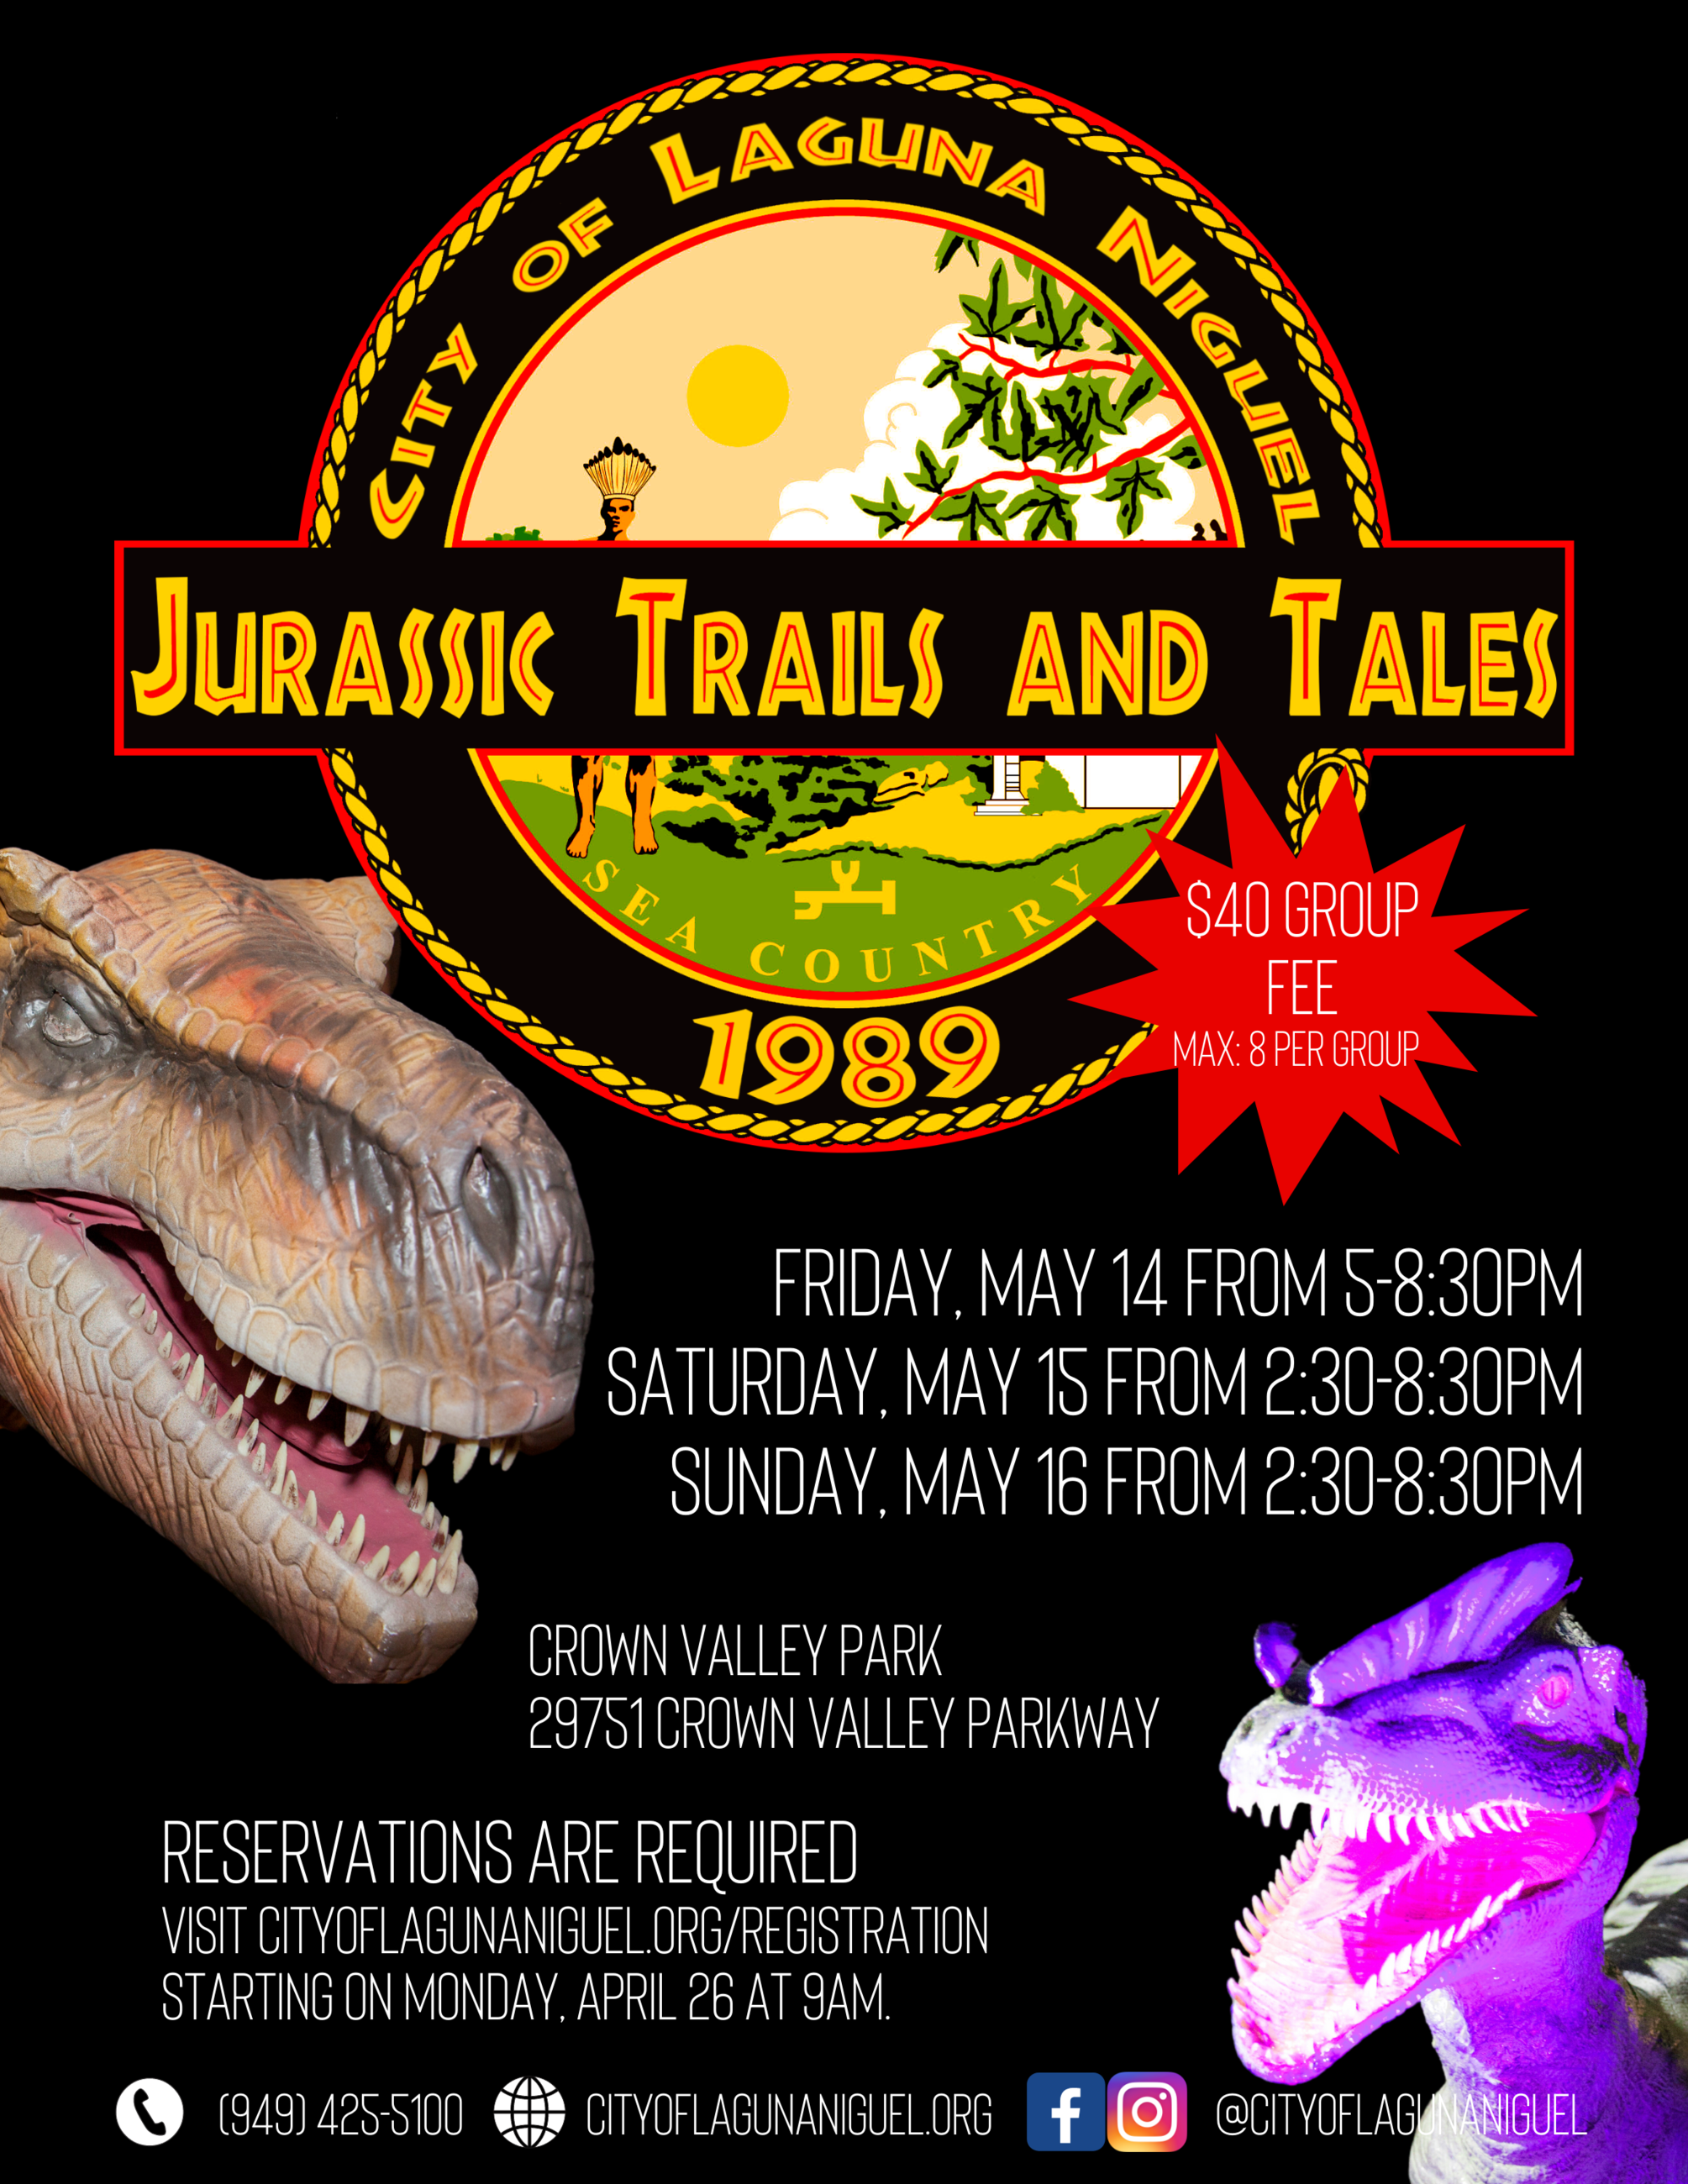 Jurassic Trails and Tales 2021